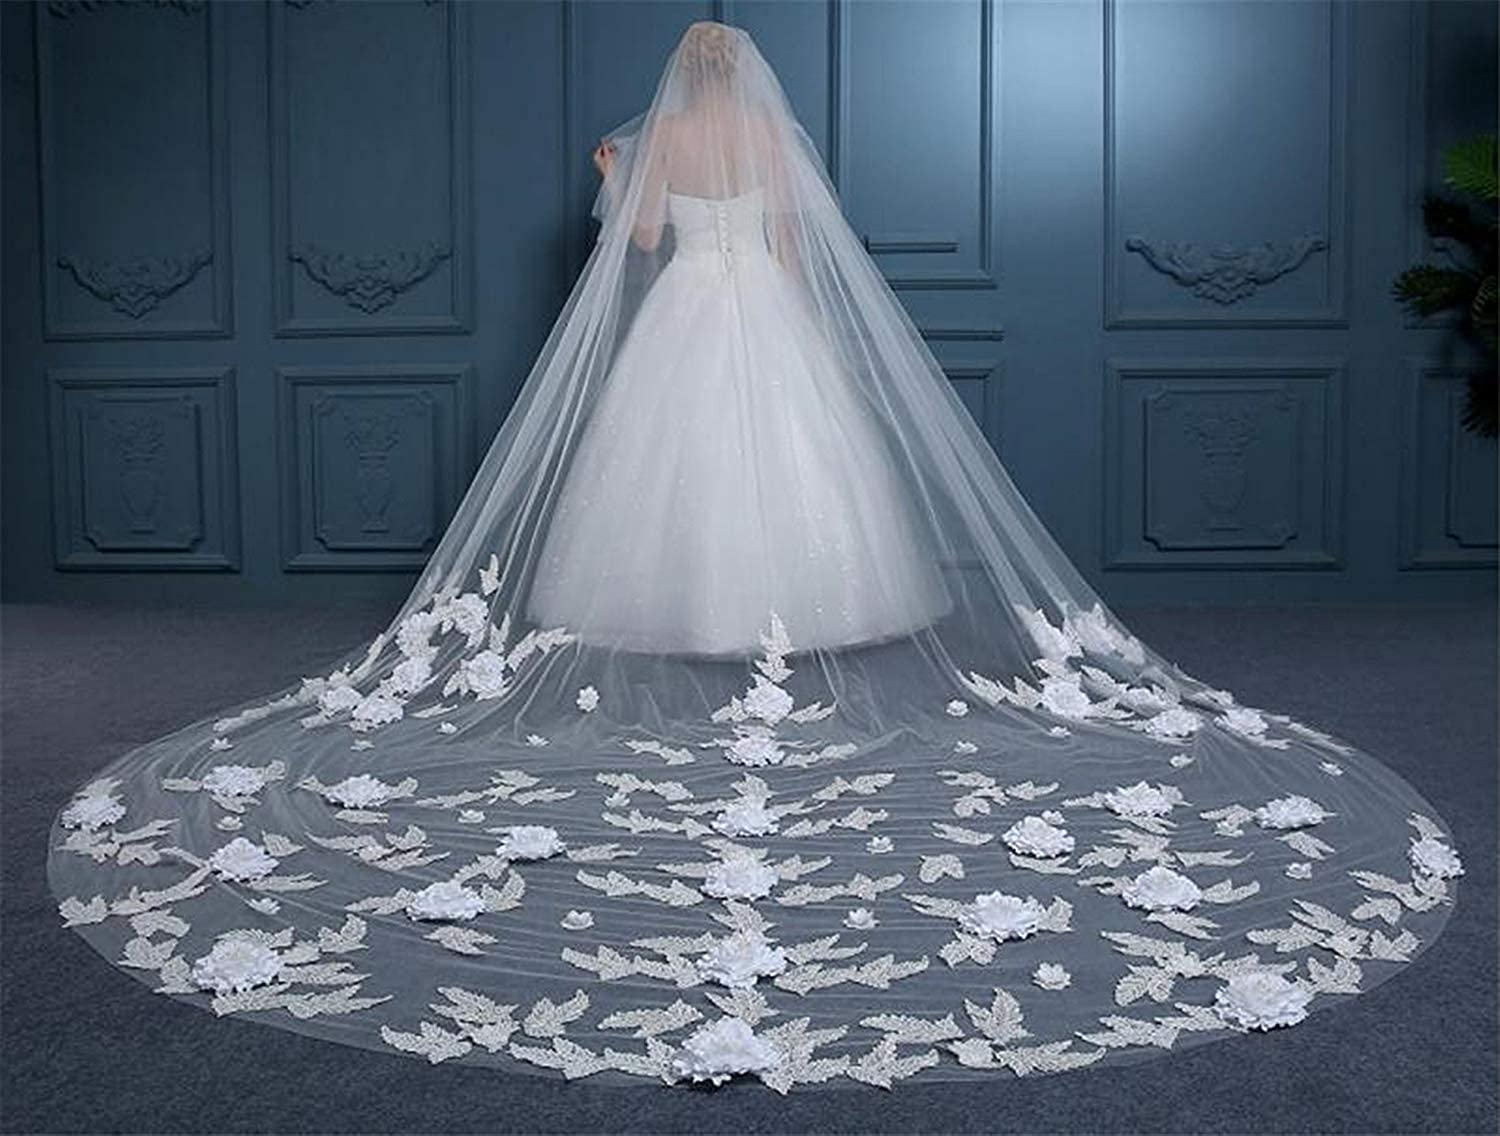 Fenghauvip 2 Tier 3D Flowers Cathedral Veils Appliques Veils for Brides with Comb